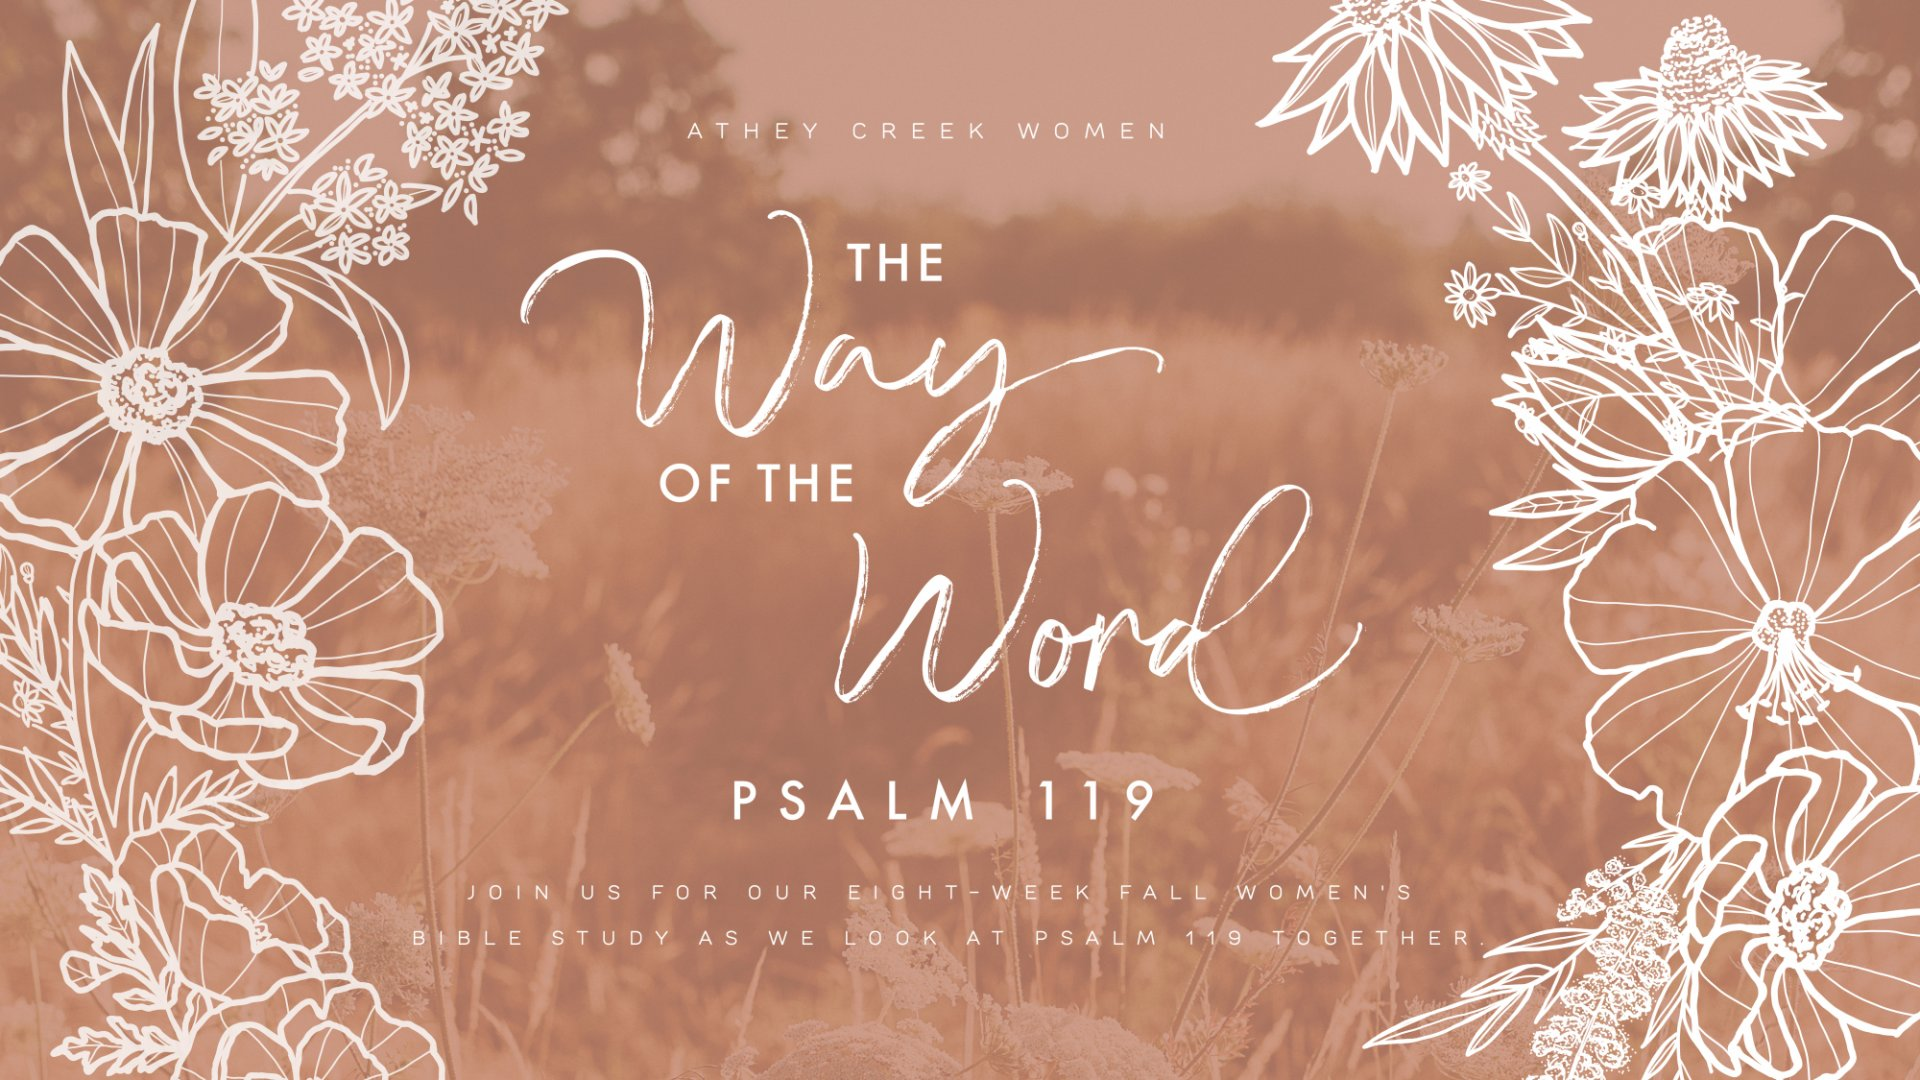 Teaching artwork for The Way of the Word: Psalm 119